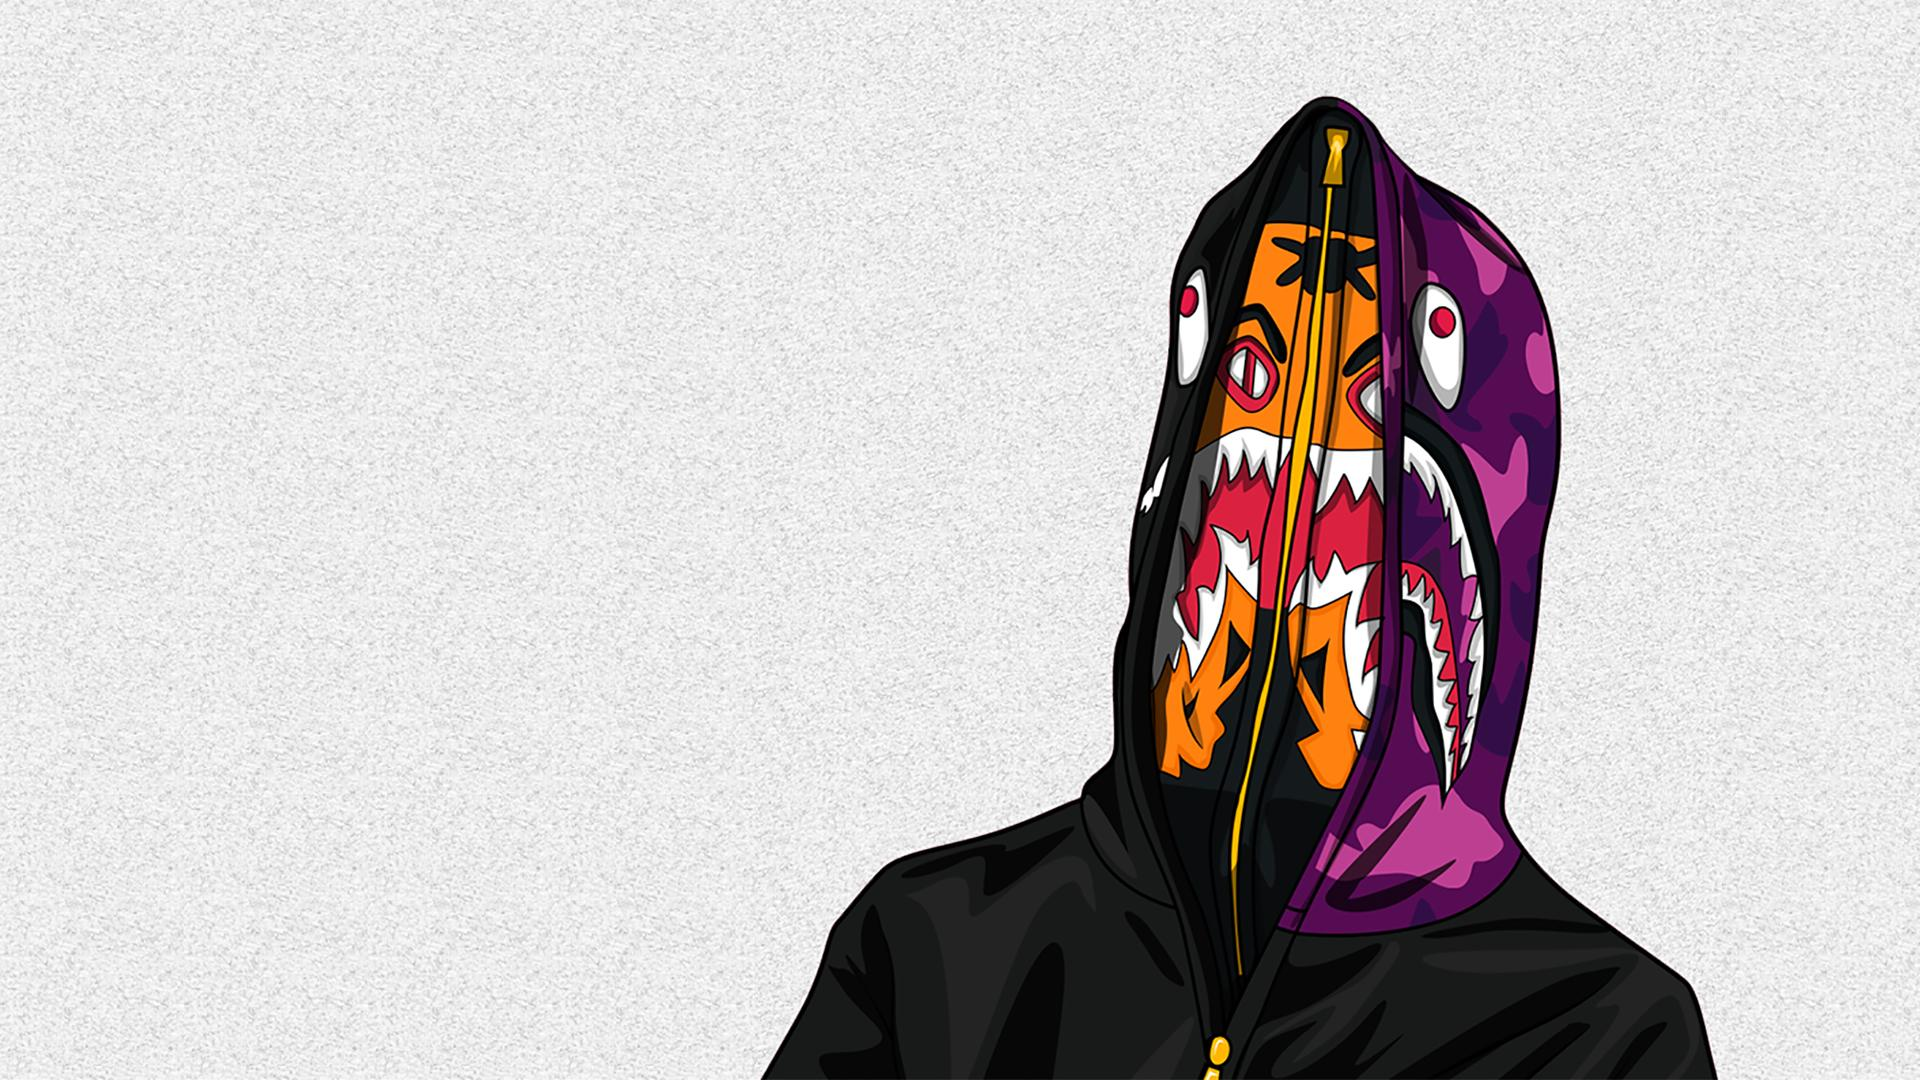 99] Hypebeast Wallpaper on WallpaperSafari 1920x1080